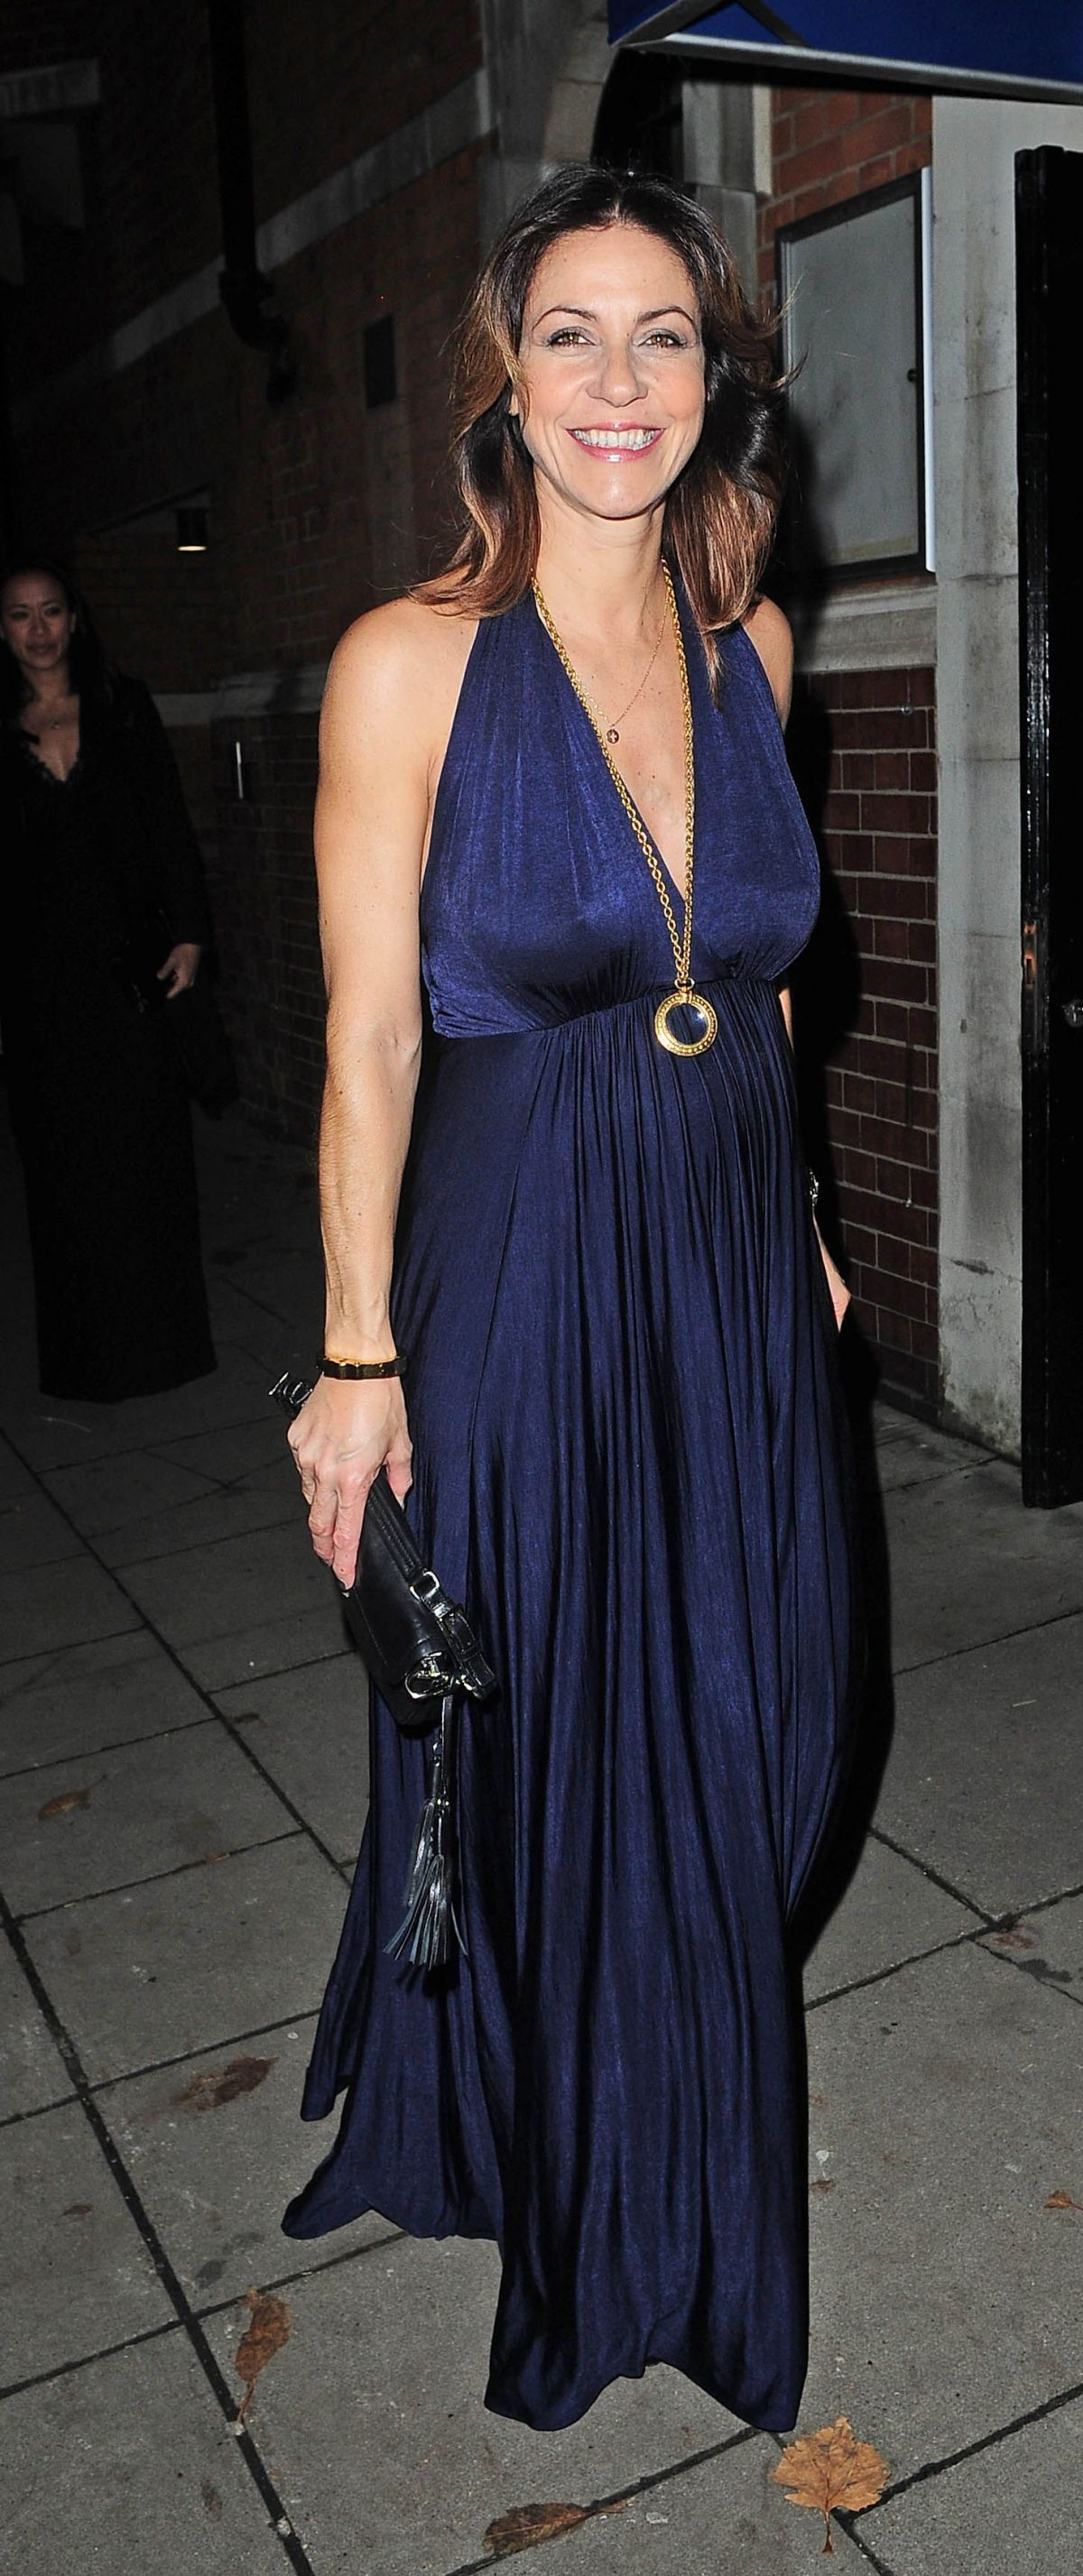 JULIA BRADBURY Arrives at Katie Piper Foundation Ball in London